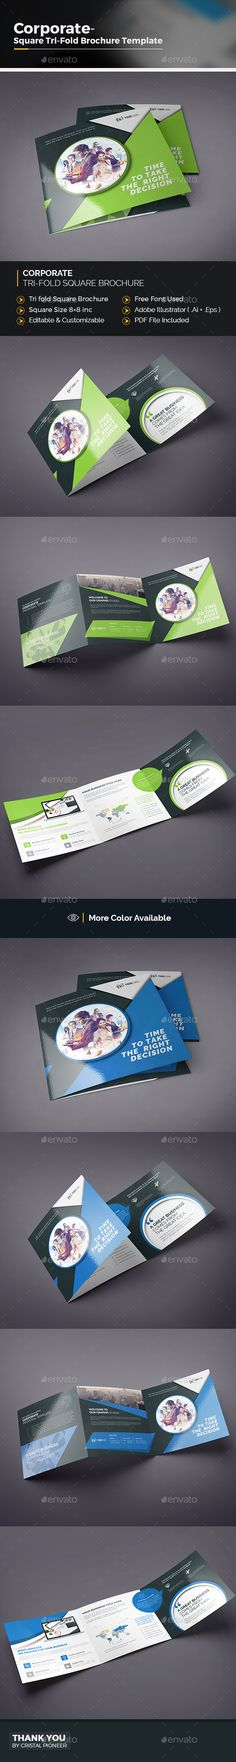 Square Tri-fold Brochure Template Vector EPS, AI Illustrator. Download here: https://graphicriver.net/item/square-trifold-brochure/17460879?ref=ksioks